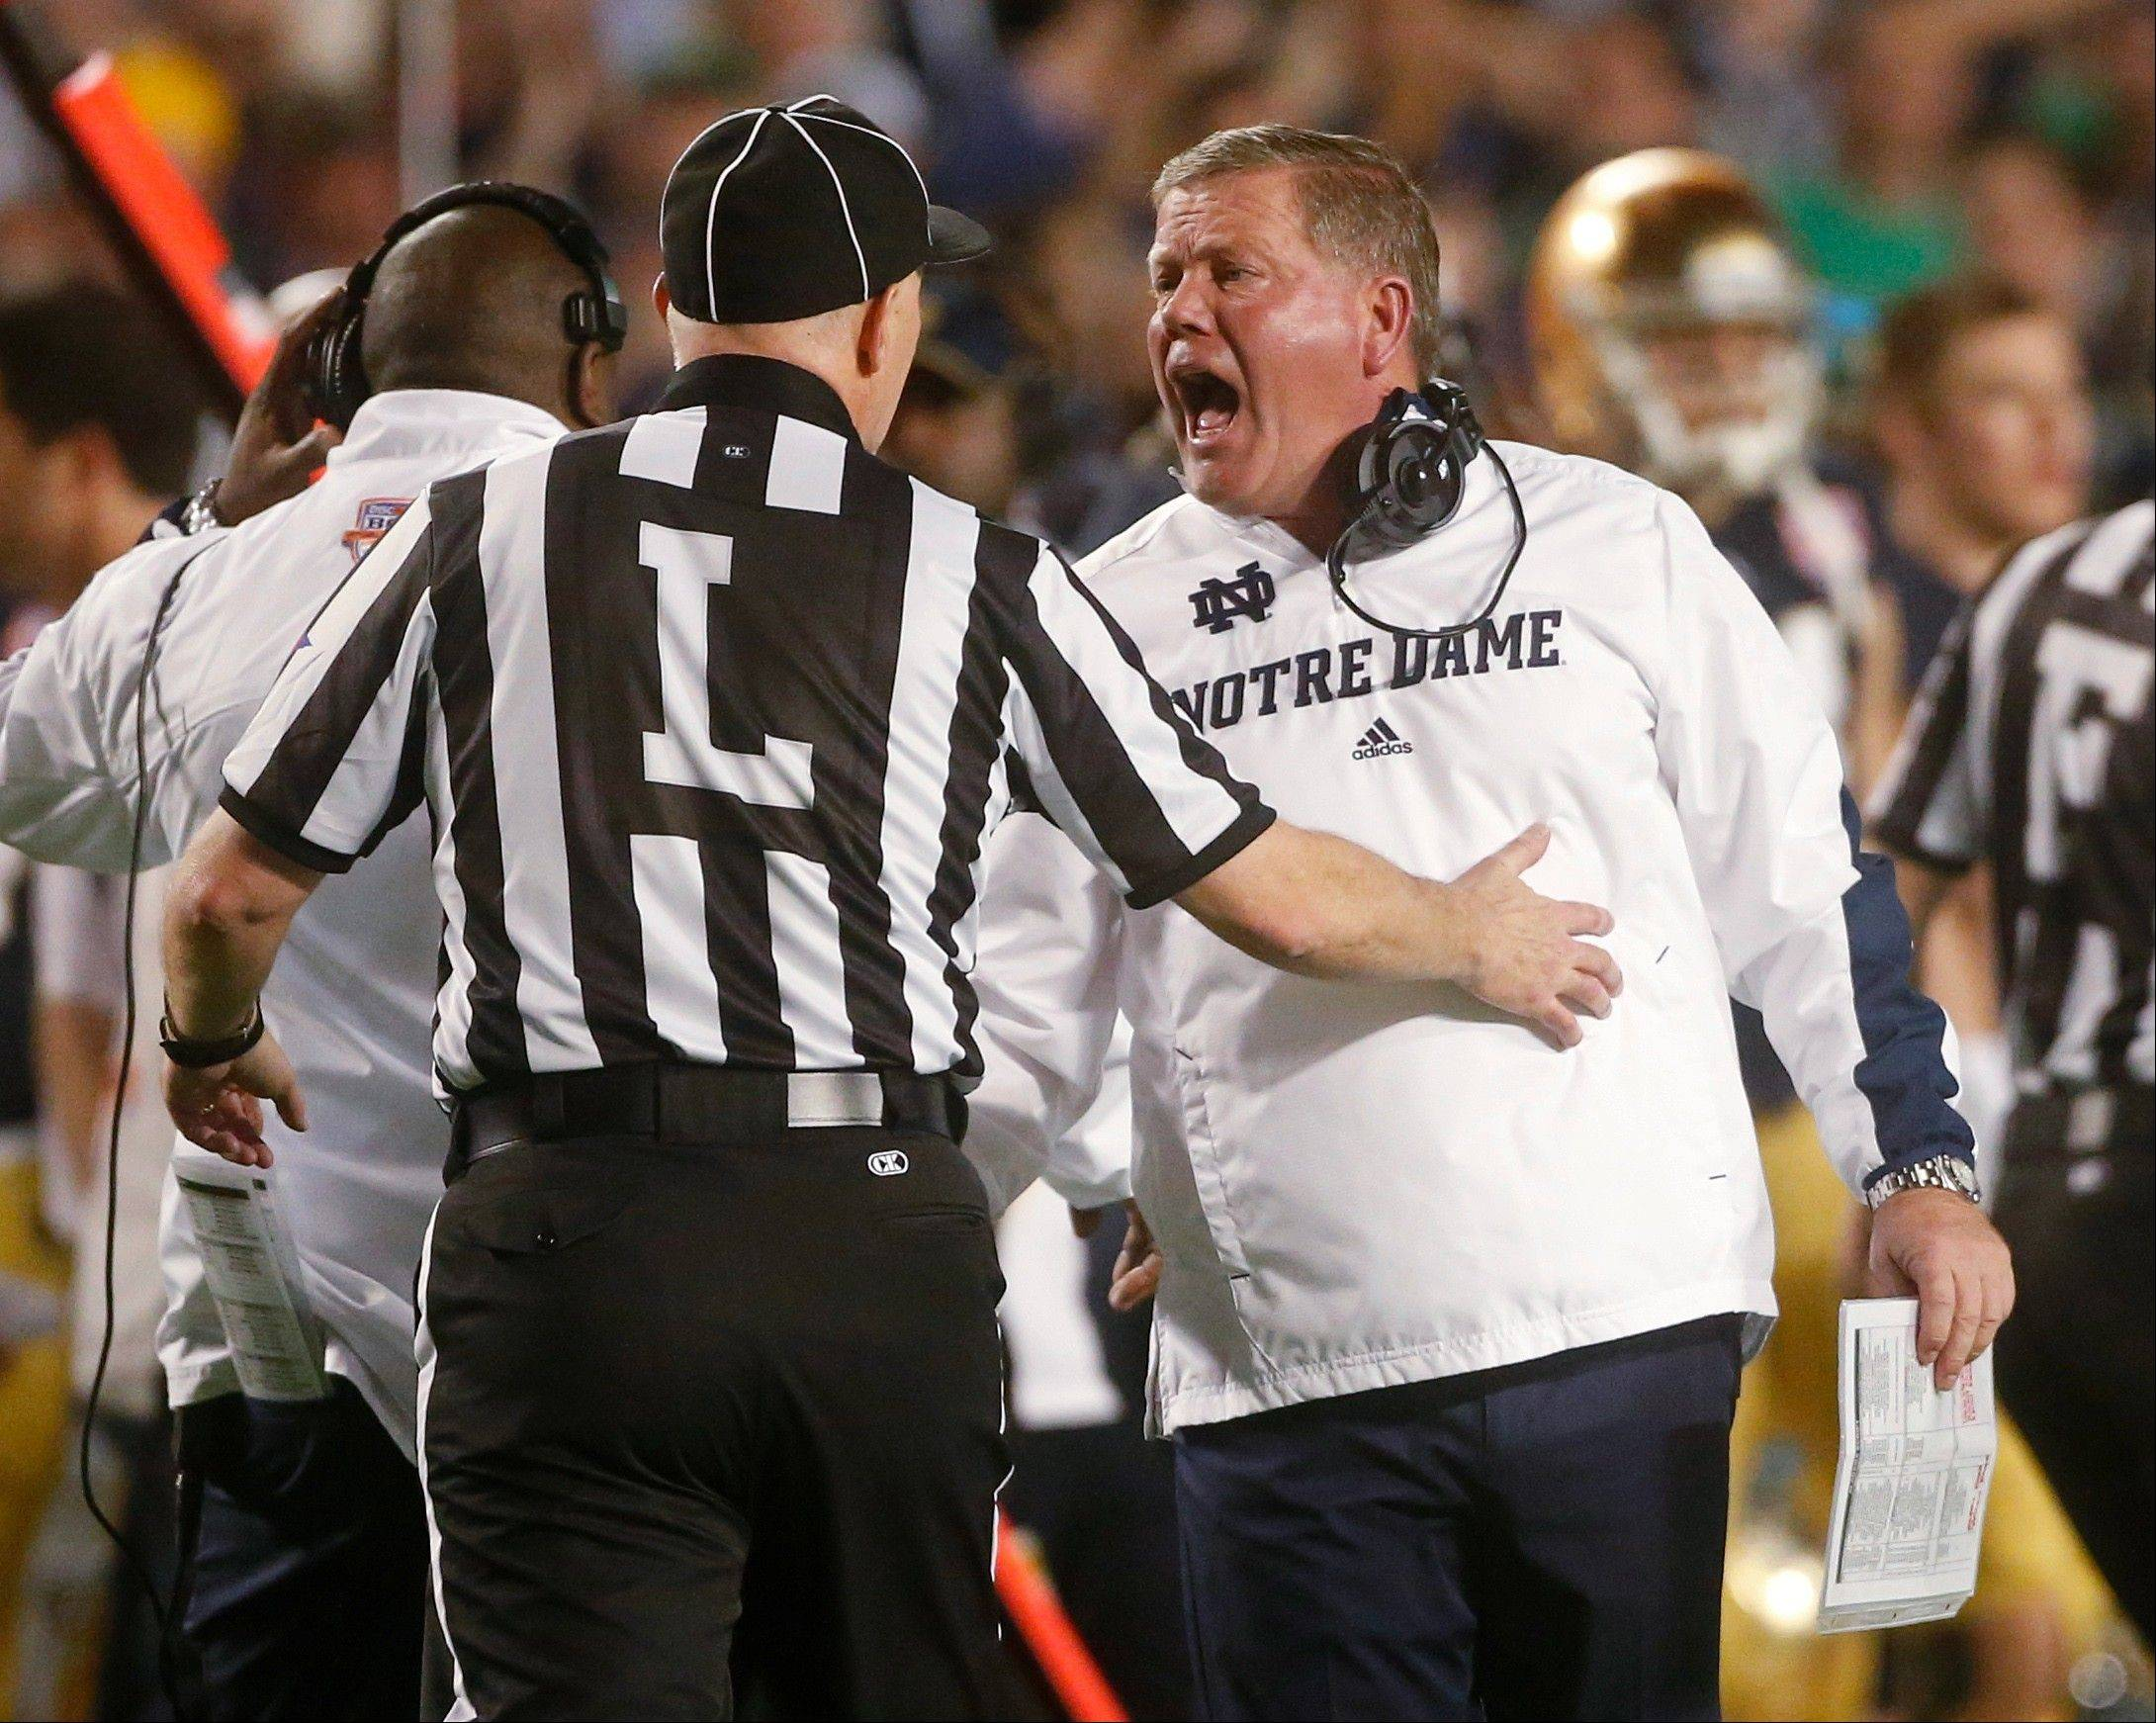 Notre Dame's Brian Kelly just did what any good coach would do when he interviewed with the Philadelphia Eagles about their opening.